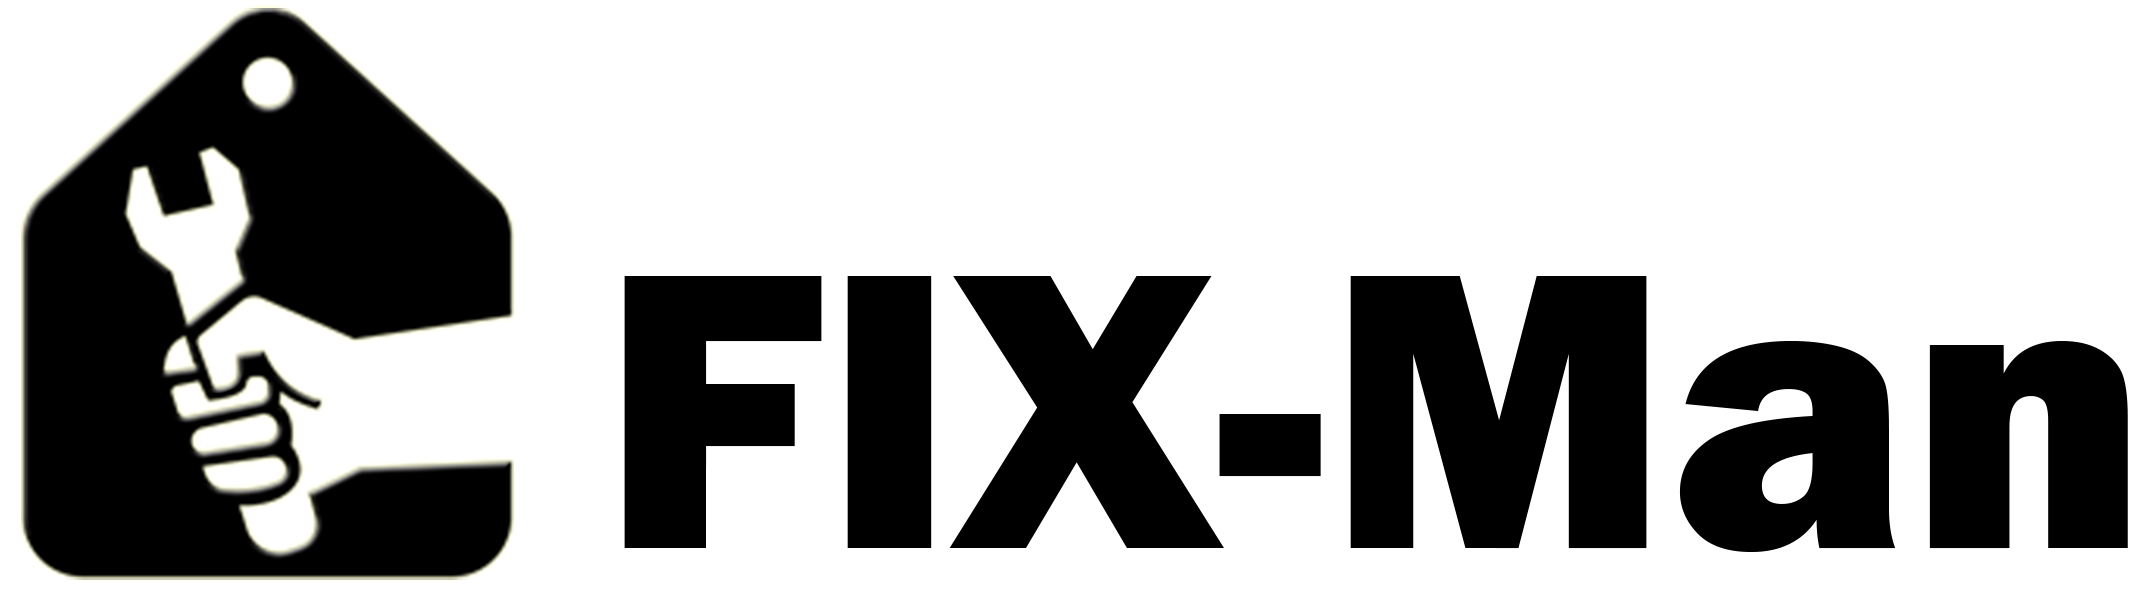 Fix-Man.png